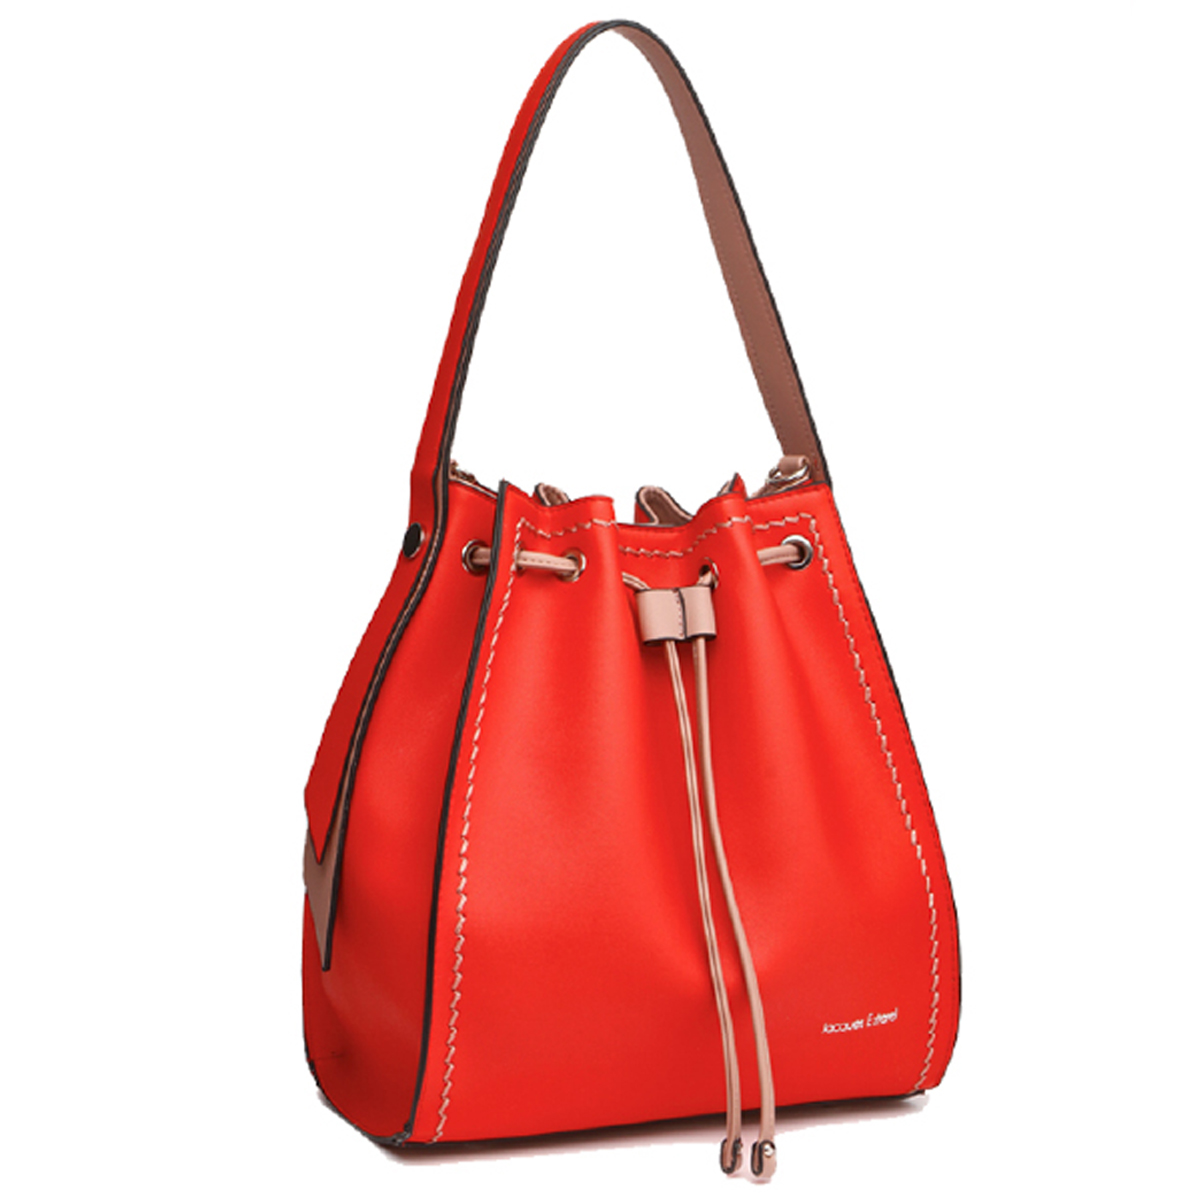 Sac bourse \'Jacques Esterel\' rouge - 32x295x145 cm - [Q7251]